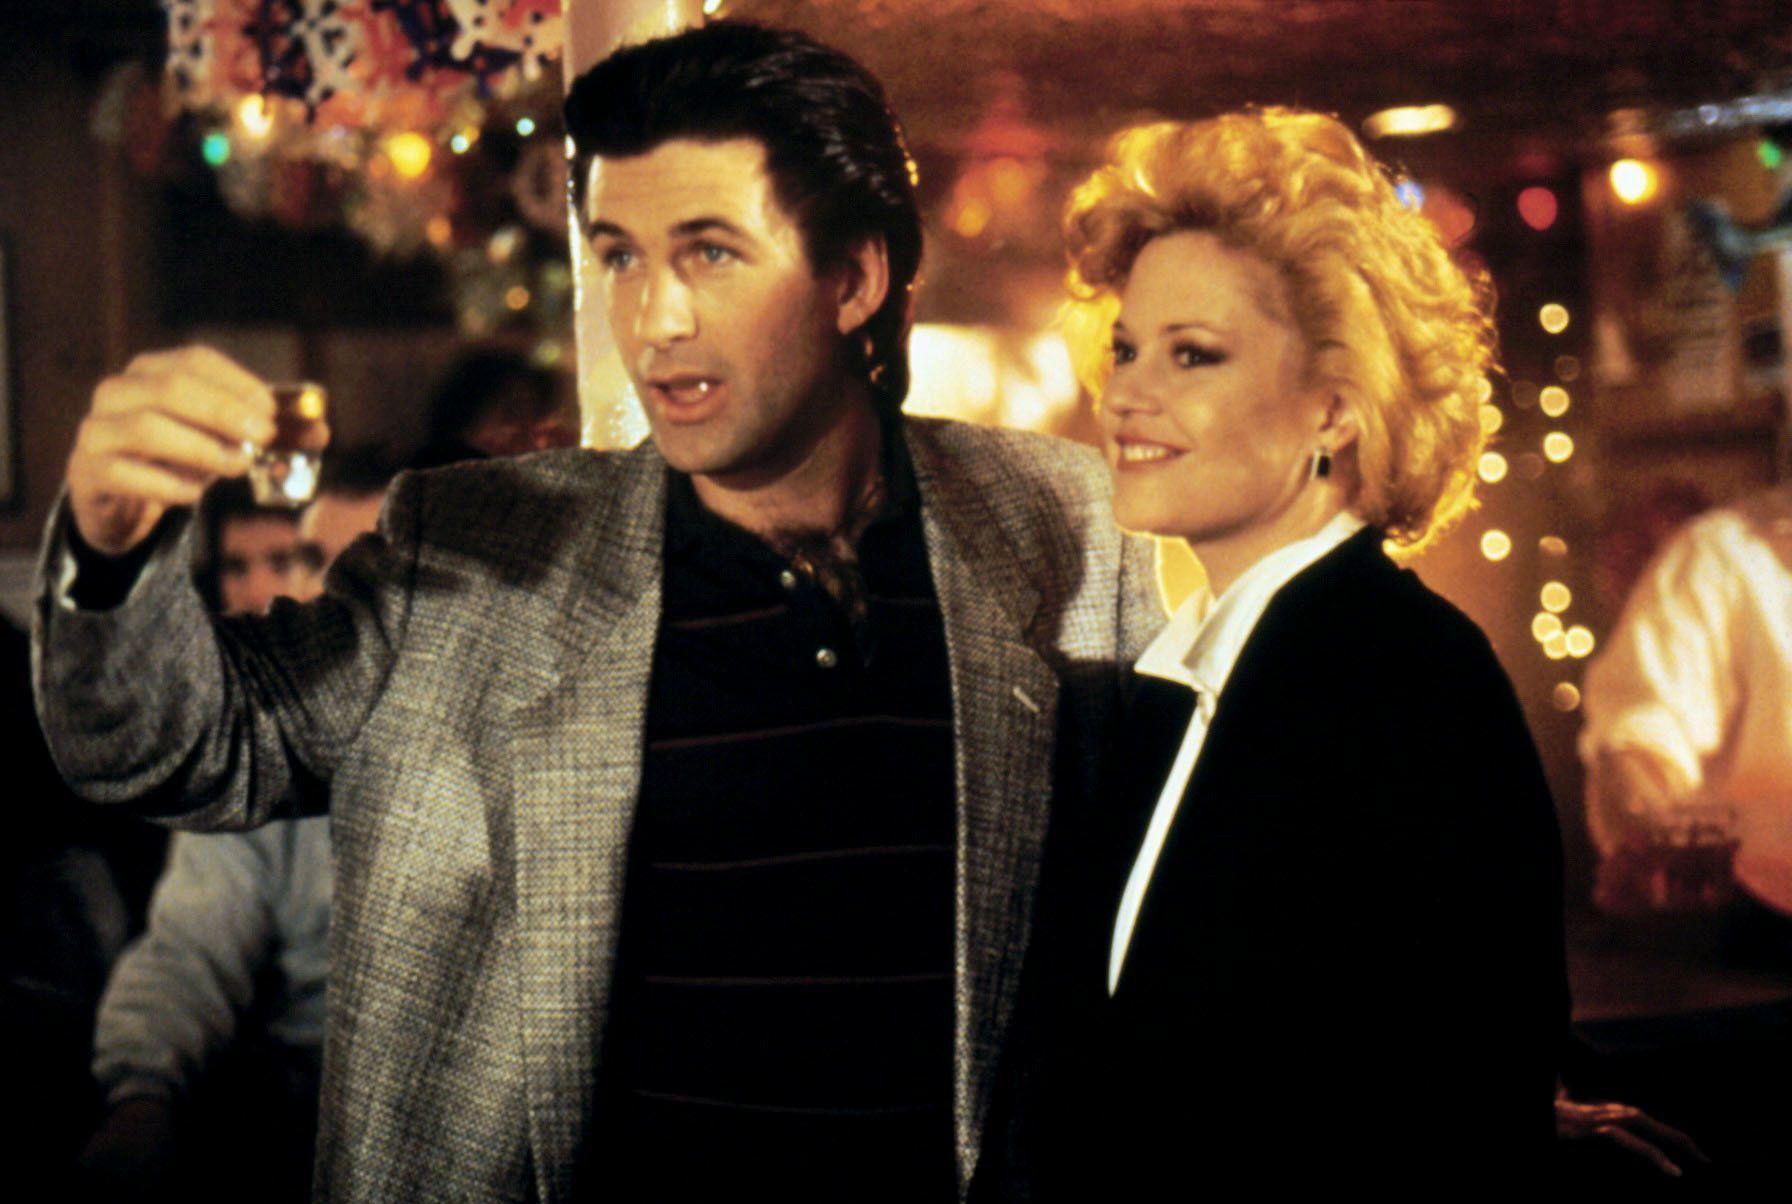 Alec Baldwin and Melanie Griffith in 'Working Girl'.